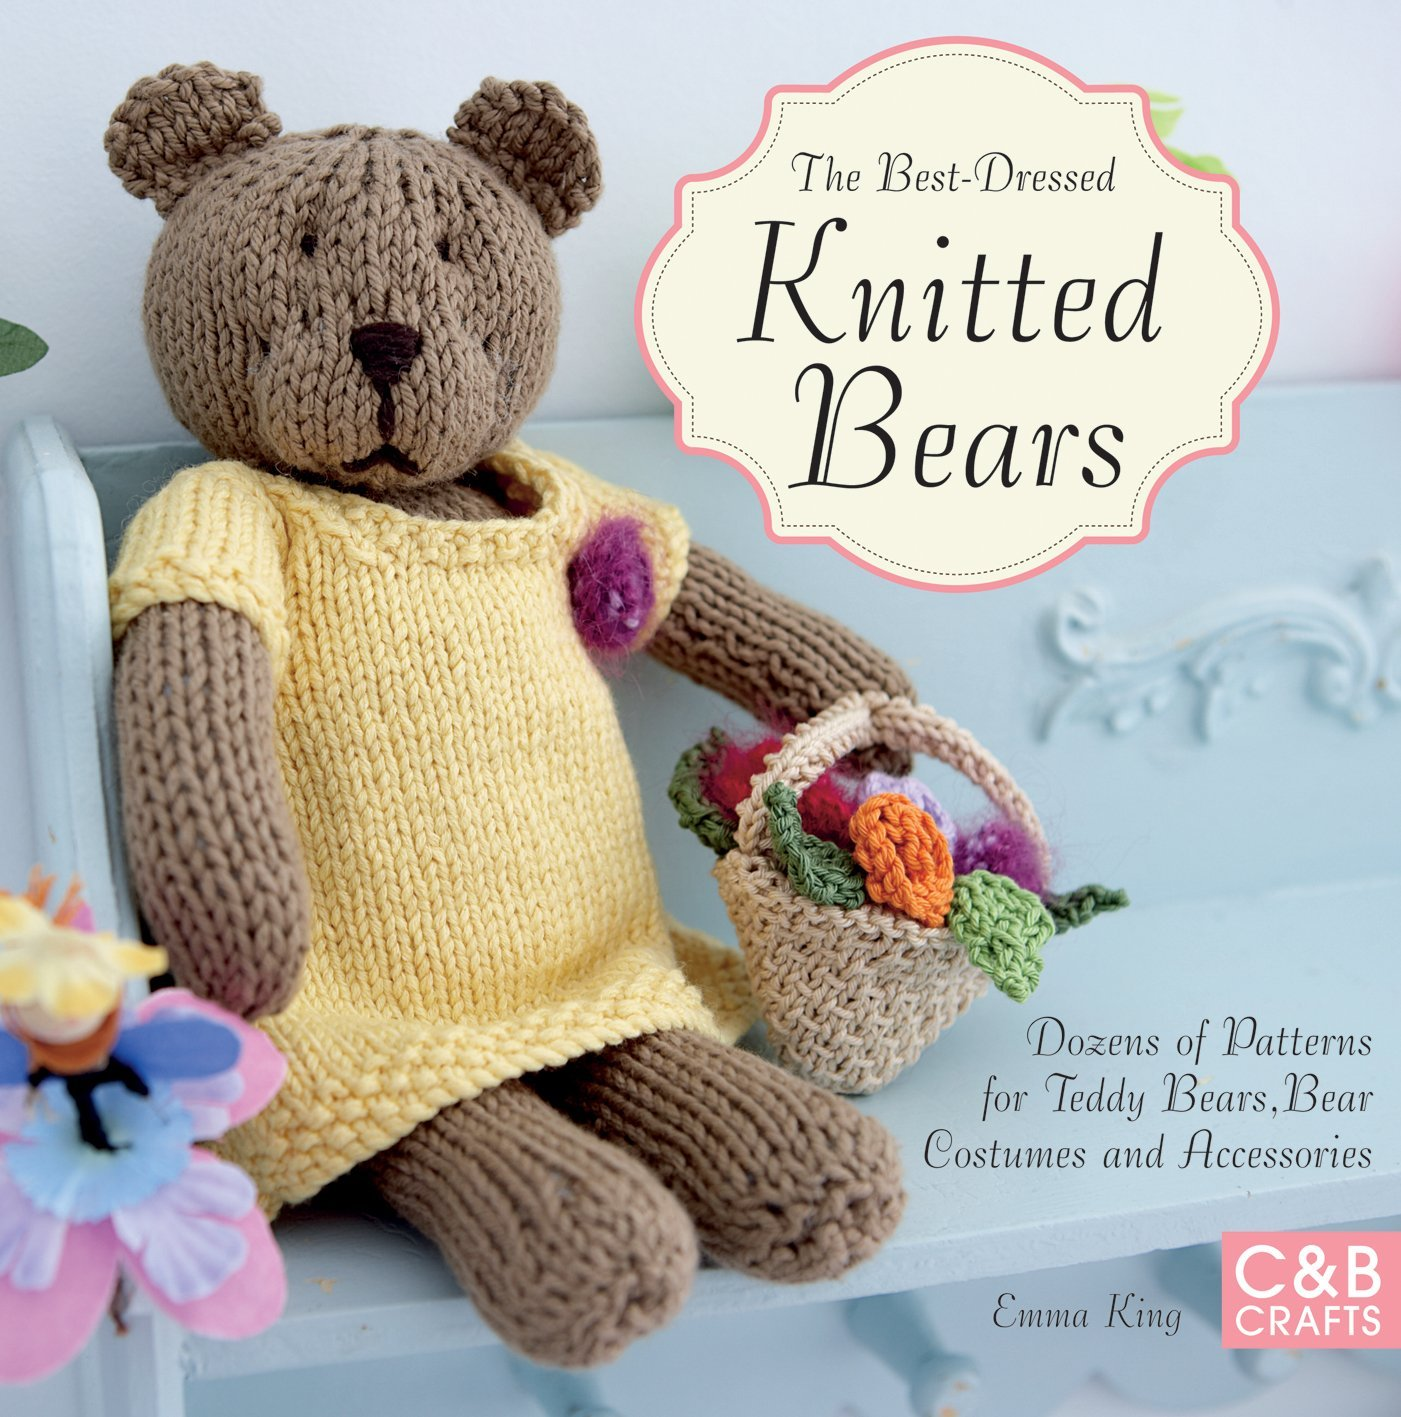 The Bookish Elf: The Best-Dressed Knitted Bears: Dozens of Patterns ...